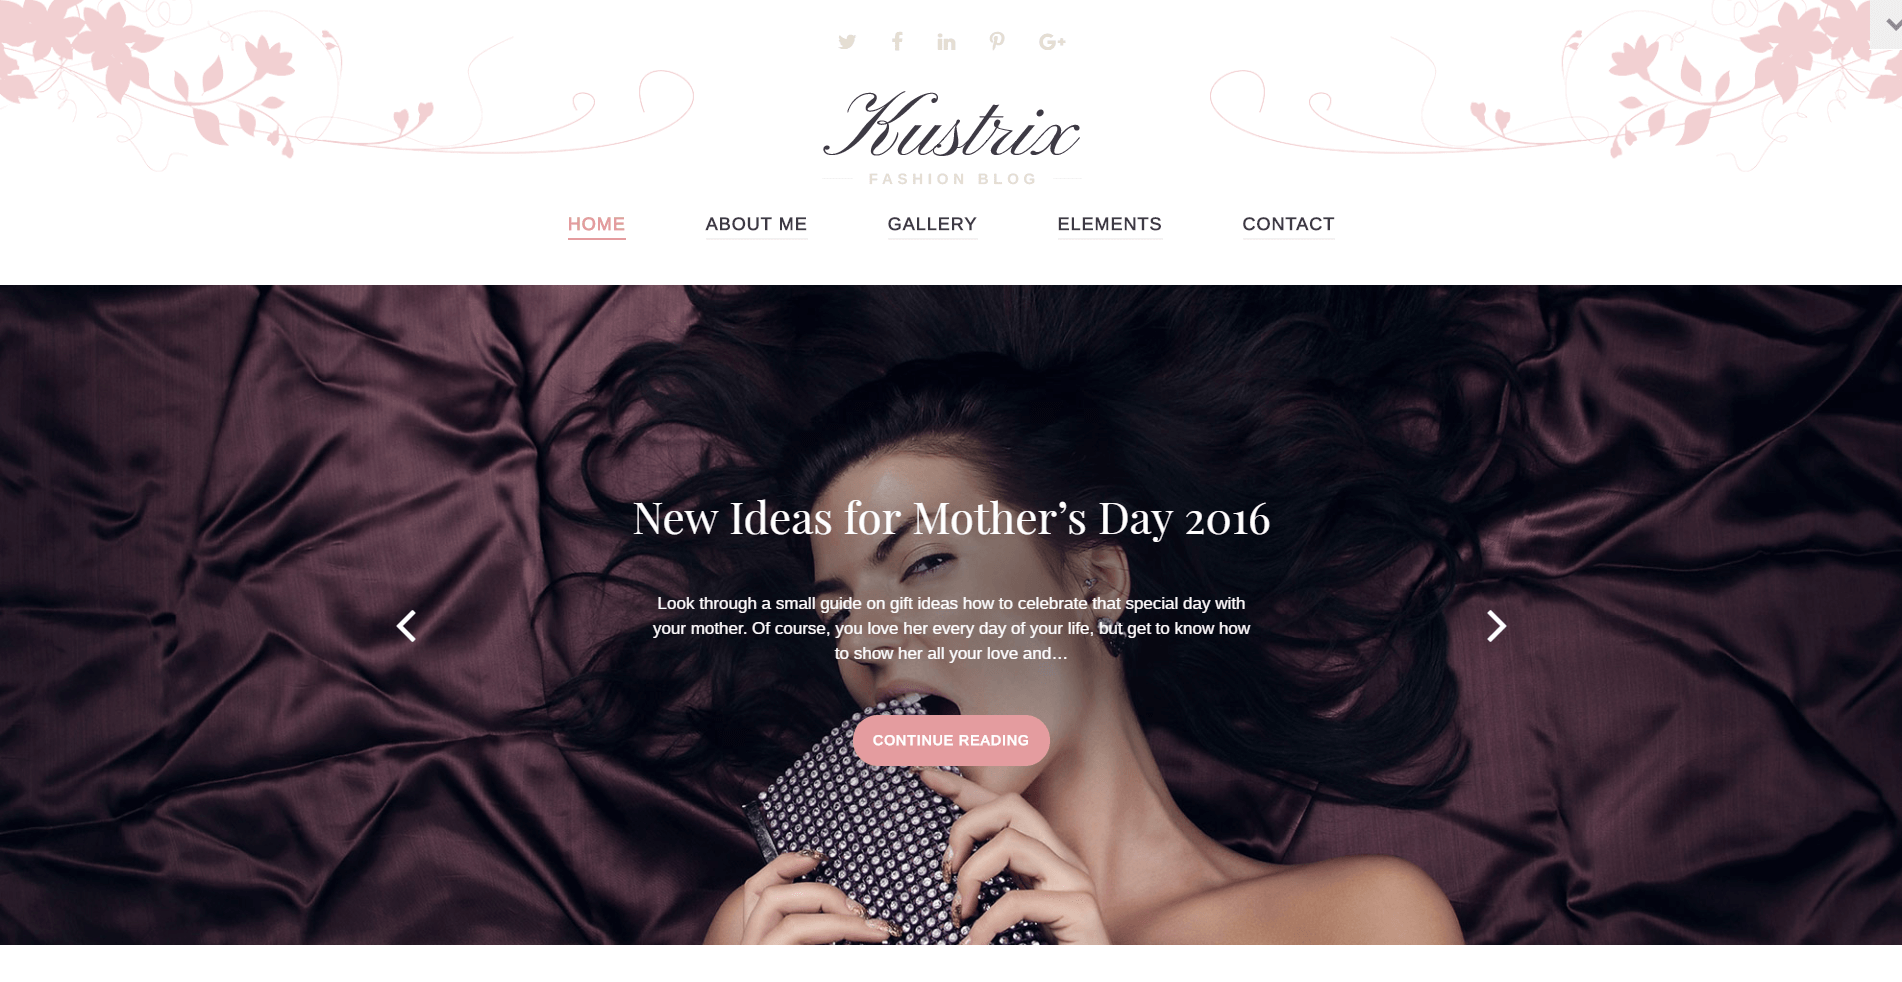 Kustrix - Fashion Blog for Women